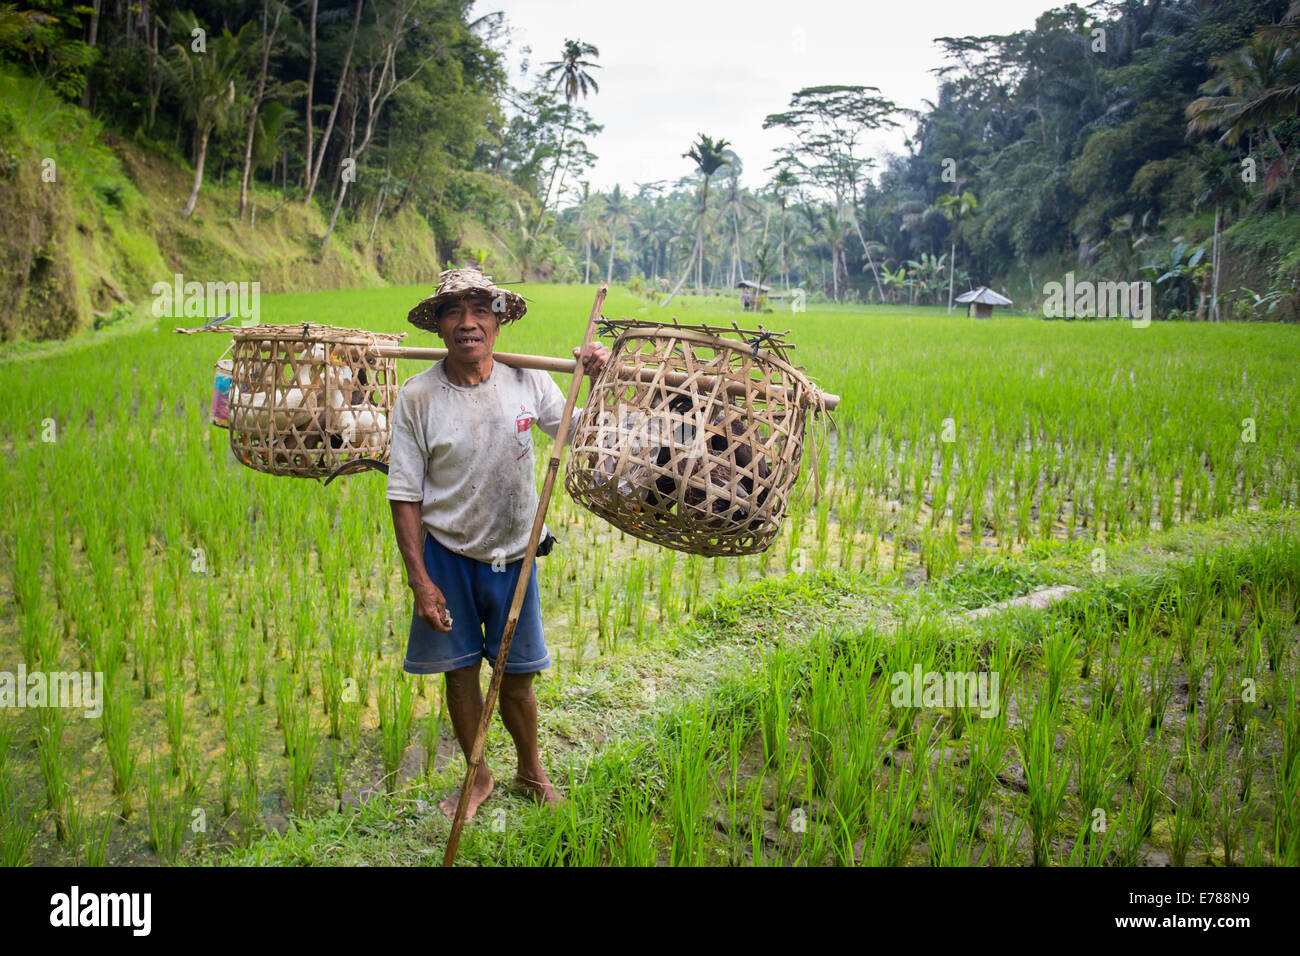 A local farmer carries his animals across rice fields on a hot sunny afternoon near Ubud, Bali, Indonesia - Stock Image